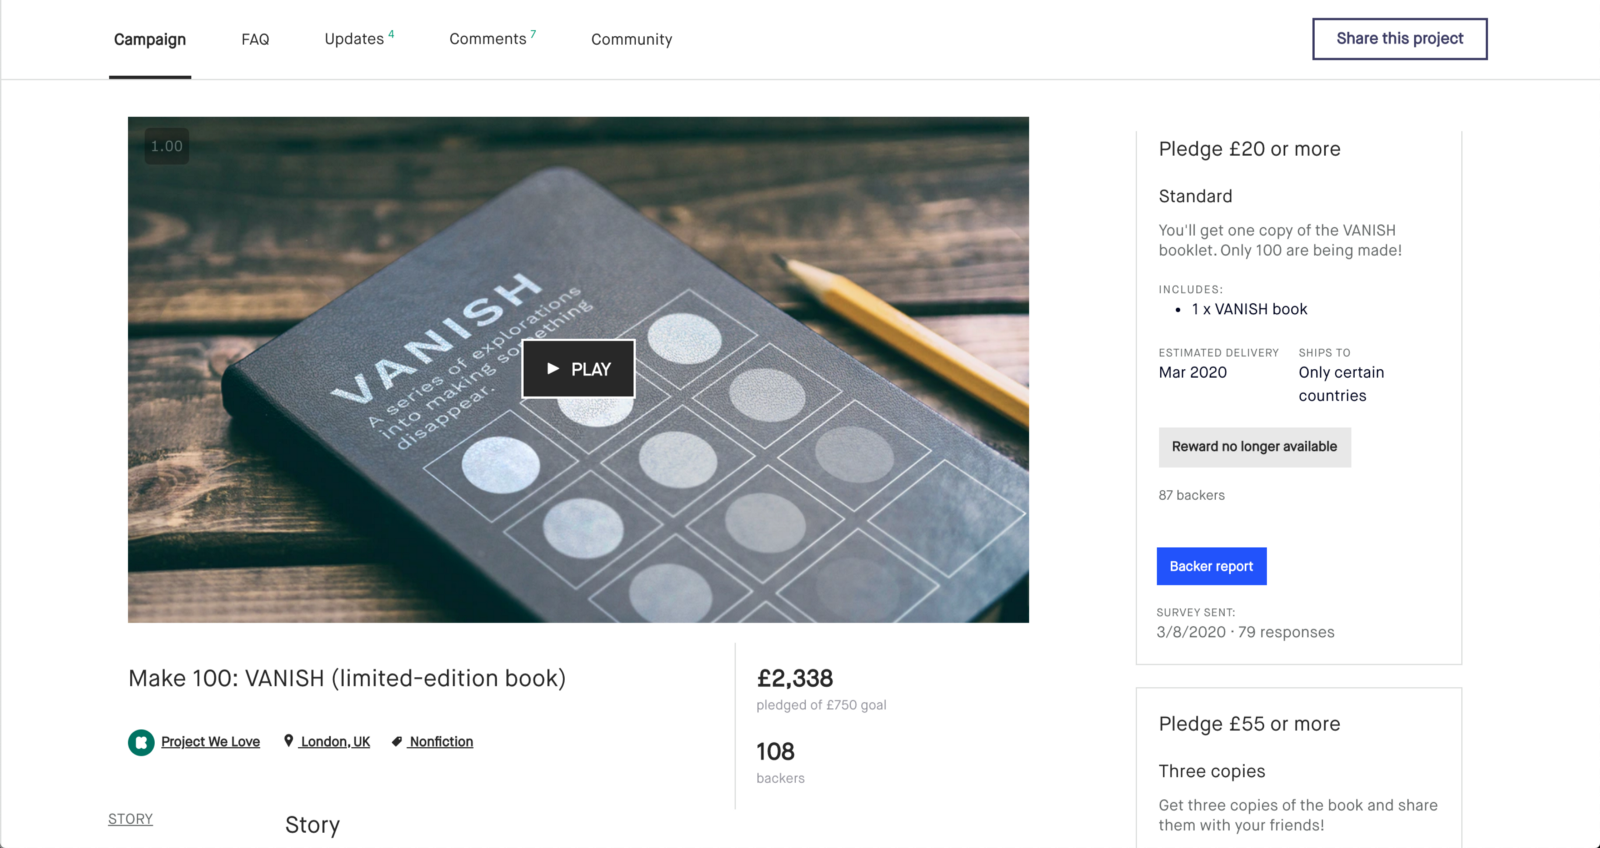 A screenshot of the Kickstarter page for the project